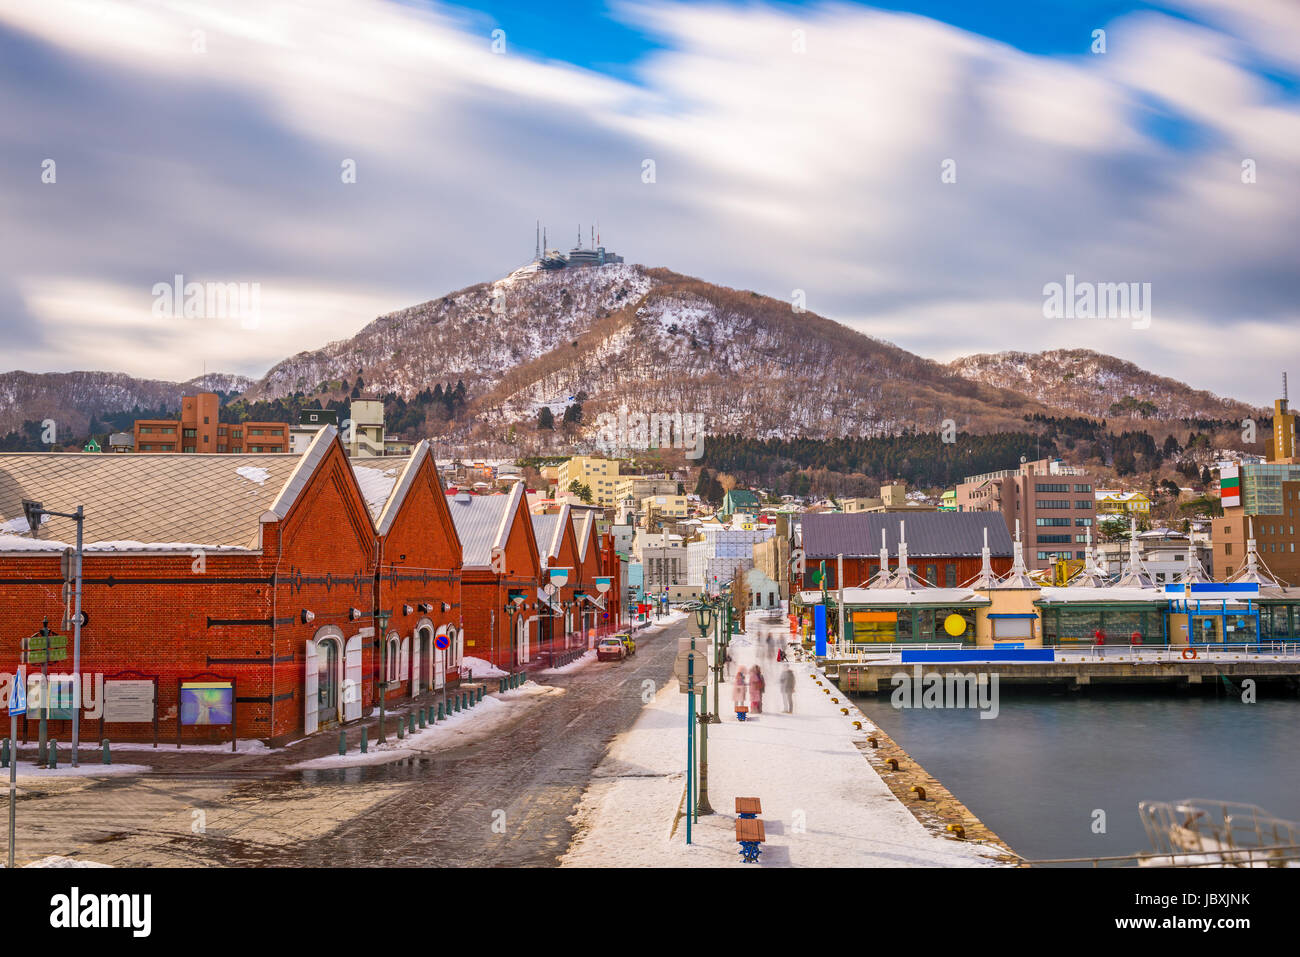 Hakodate, Japan cityscape at the historic Red Brick Warehouses and Mt. Hakodate. - Stock Image